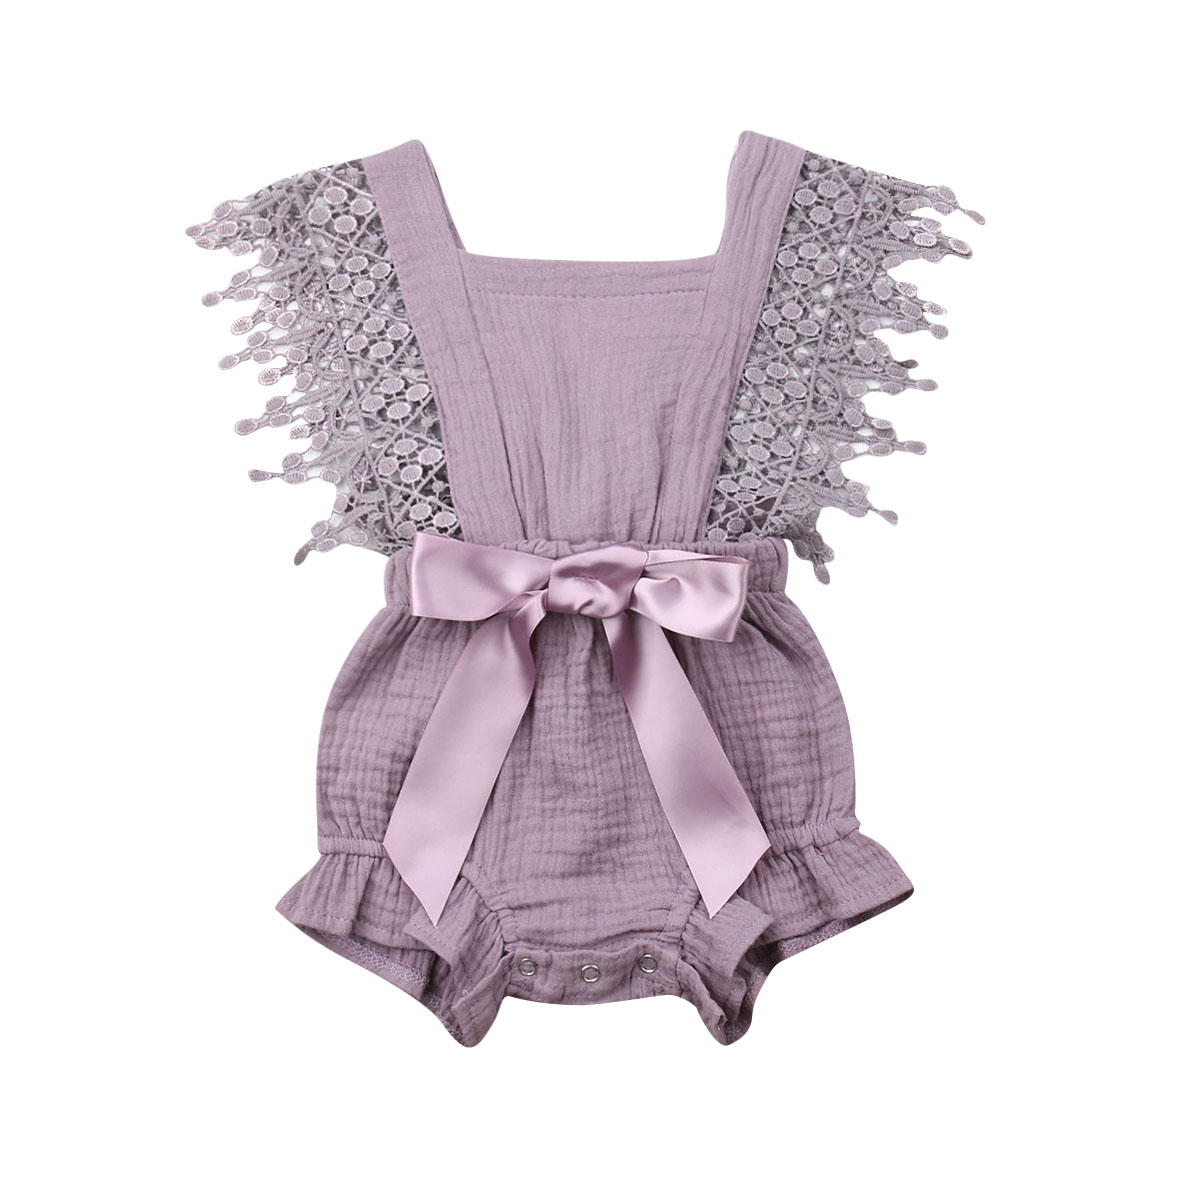 0 6M Newborn Toddler Girls Tassel Sleeveless Lace Ruffle Bodysuit Hollow Solid Color Backless Bodysuit with Bow Summer Clothes in Bodysuits from Mother Kids